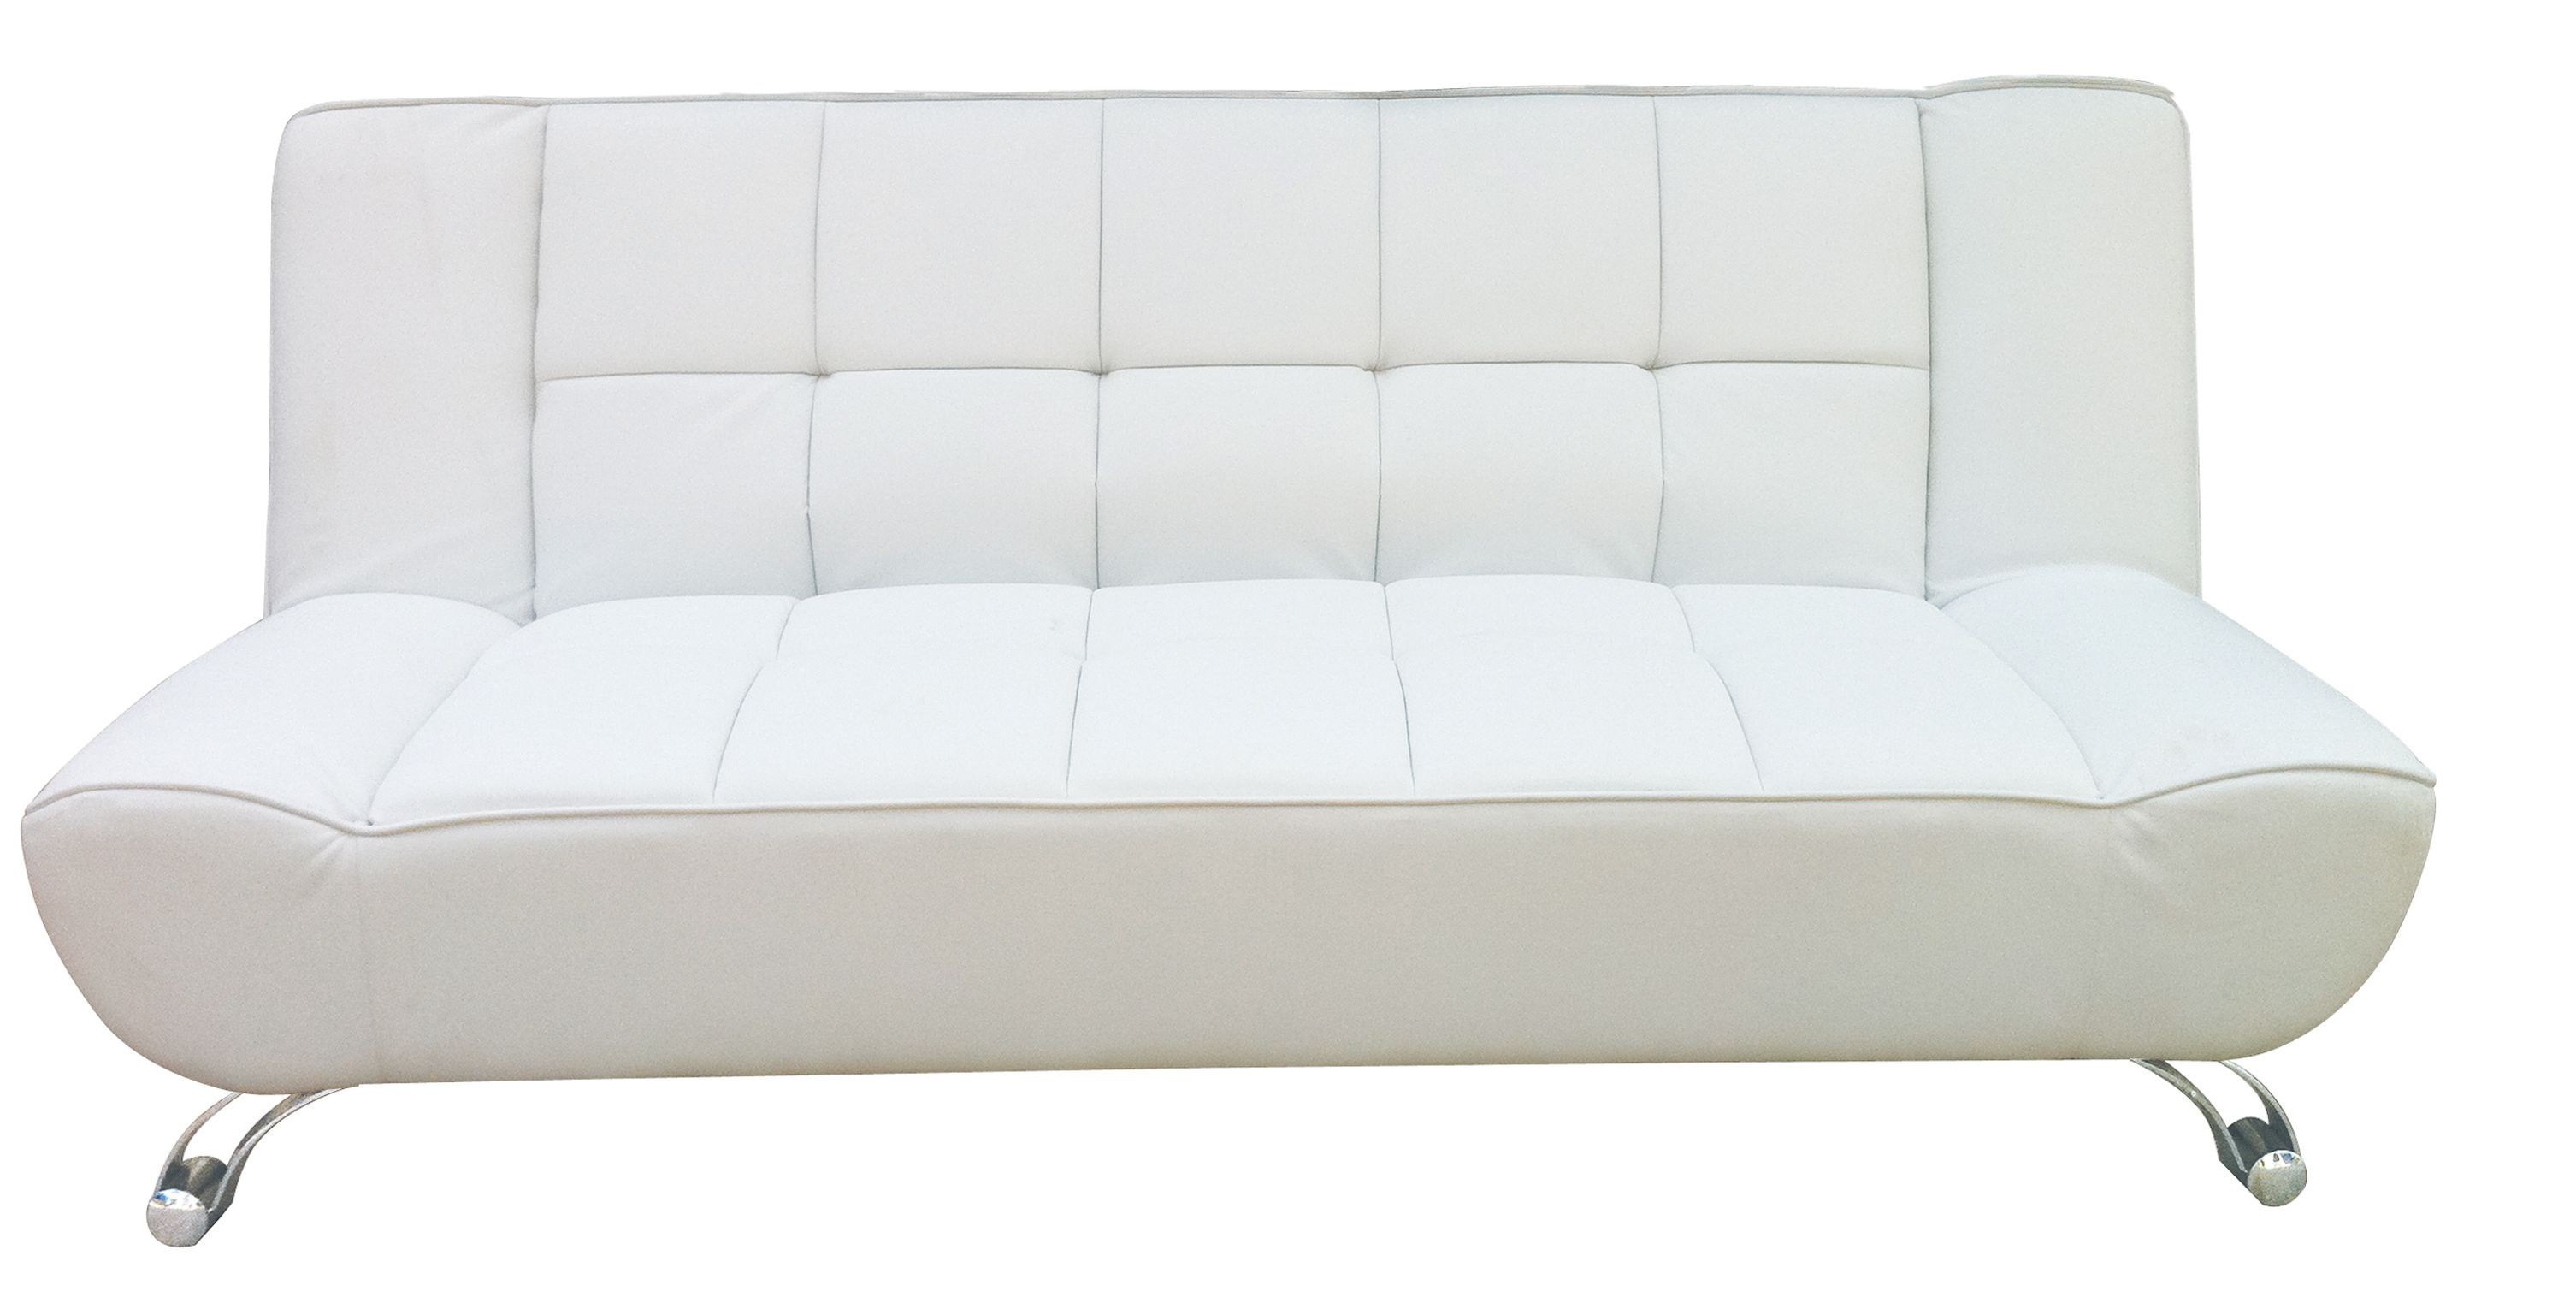 Vogue A Contemporary, Sofa Bed, Available In Black Or White Faux Leather,  With